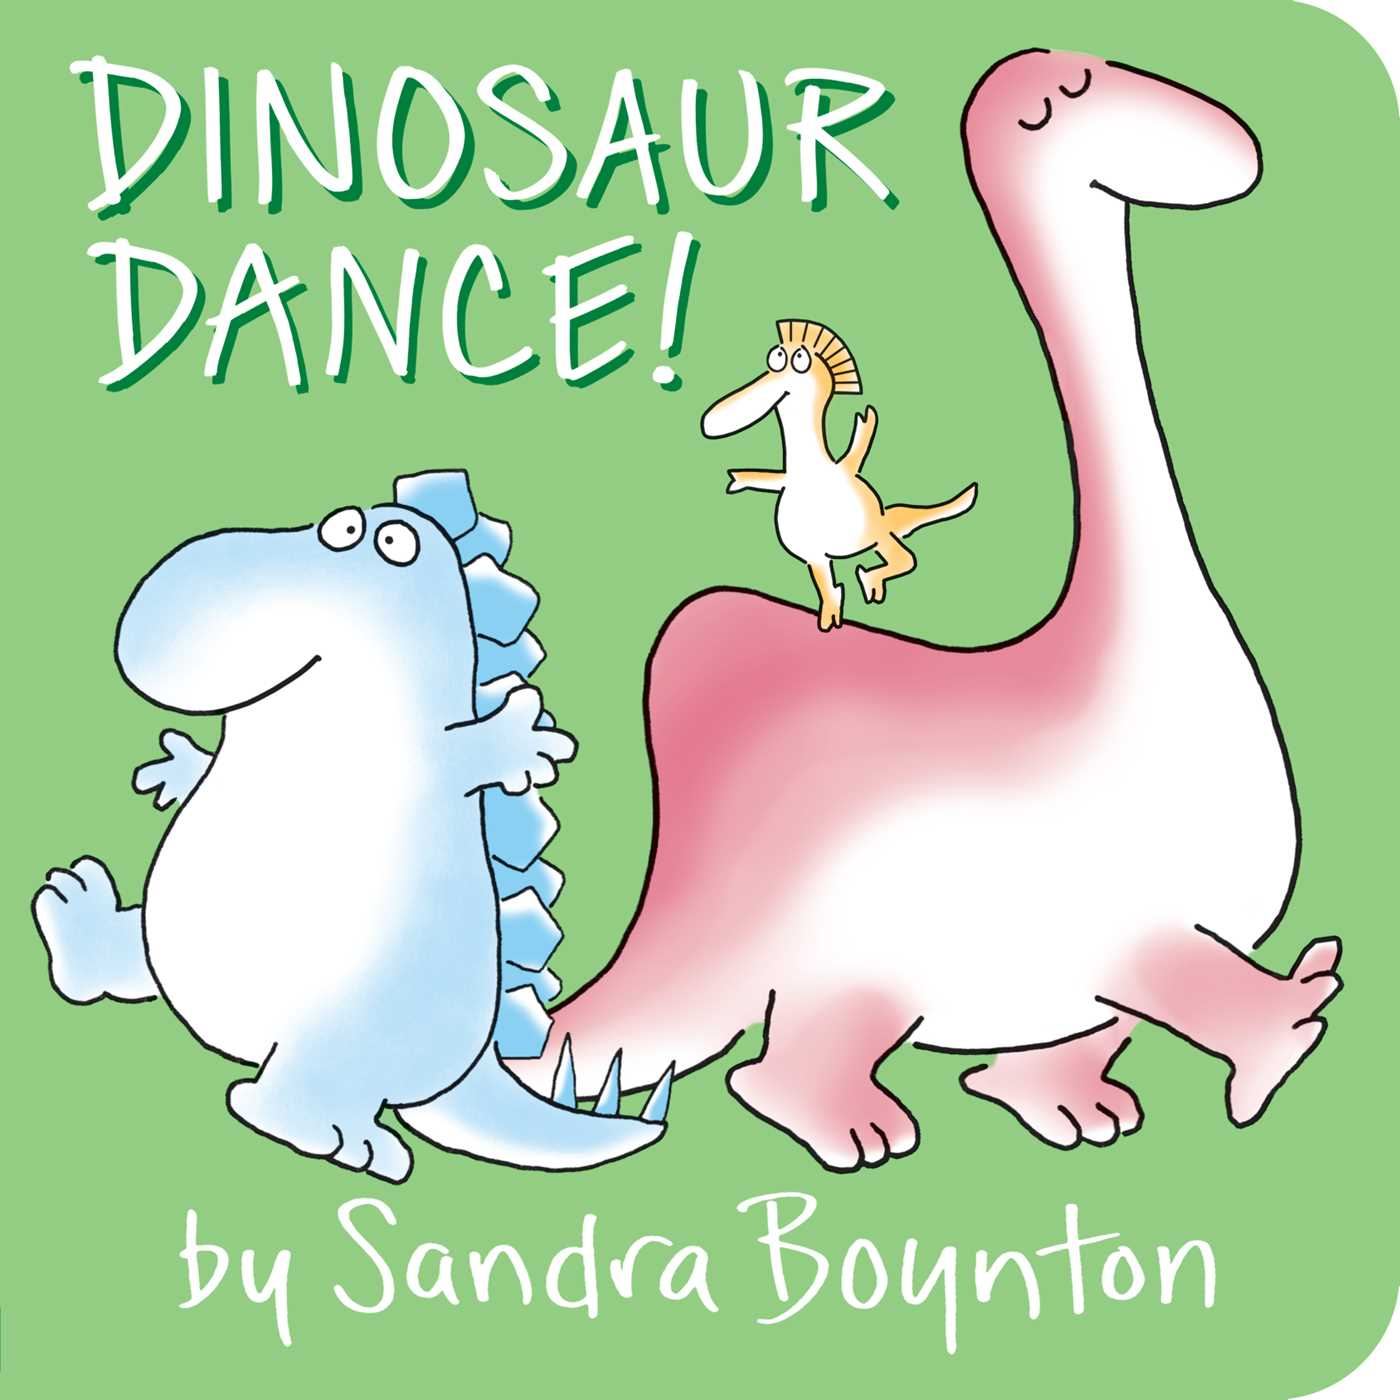 Dinosaur dance book by sandra boynton official publisher page dinosaur dance 9781481480994 hr fandeluxe Choice Image